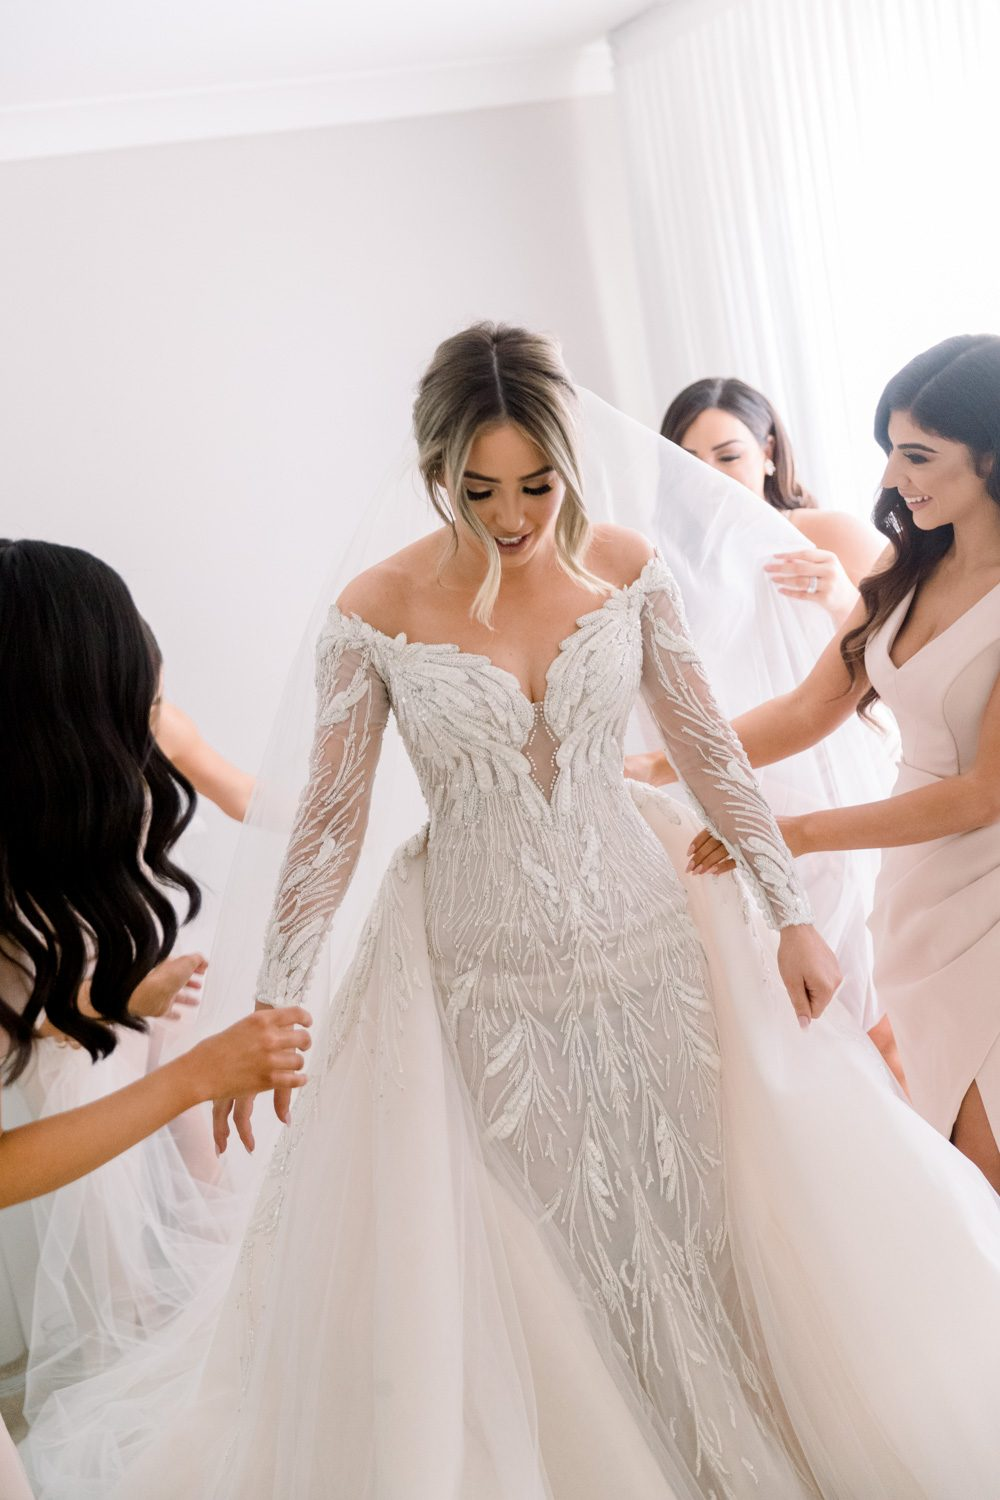 Bride is putting on her steven khalil wedding gown with all the bridesmaids